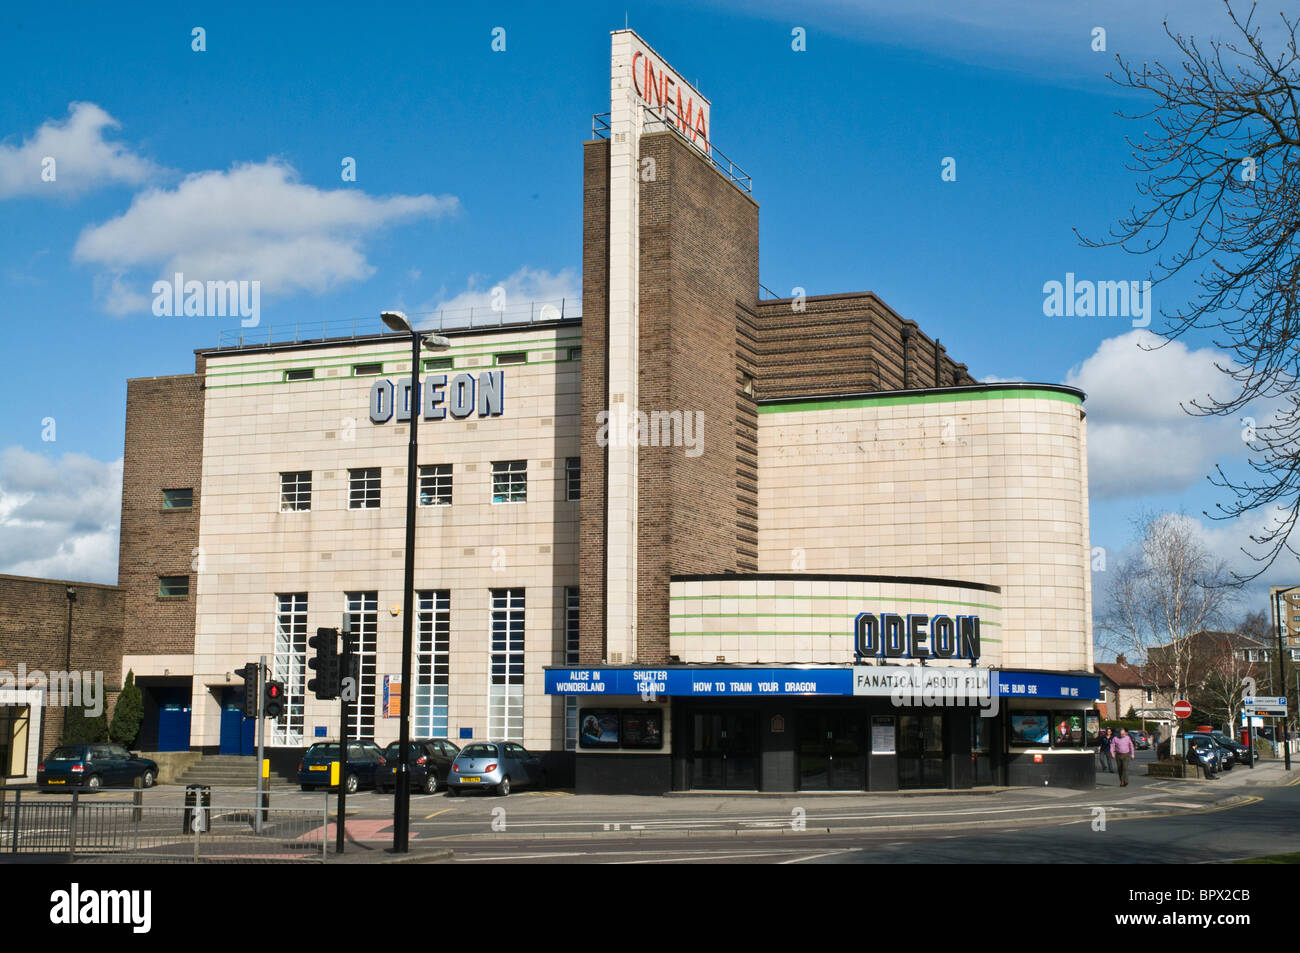 dh  HARROGATE NORTH YORKSHIRE Odeon Cinema artdeco film theatre building art deco england uk - Stock Image